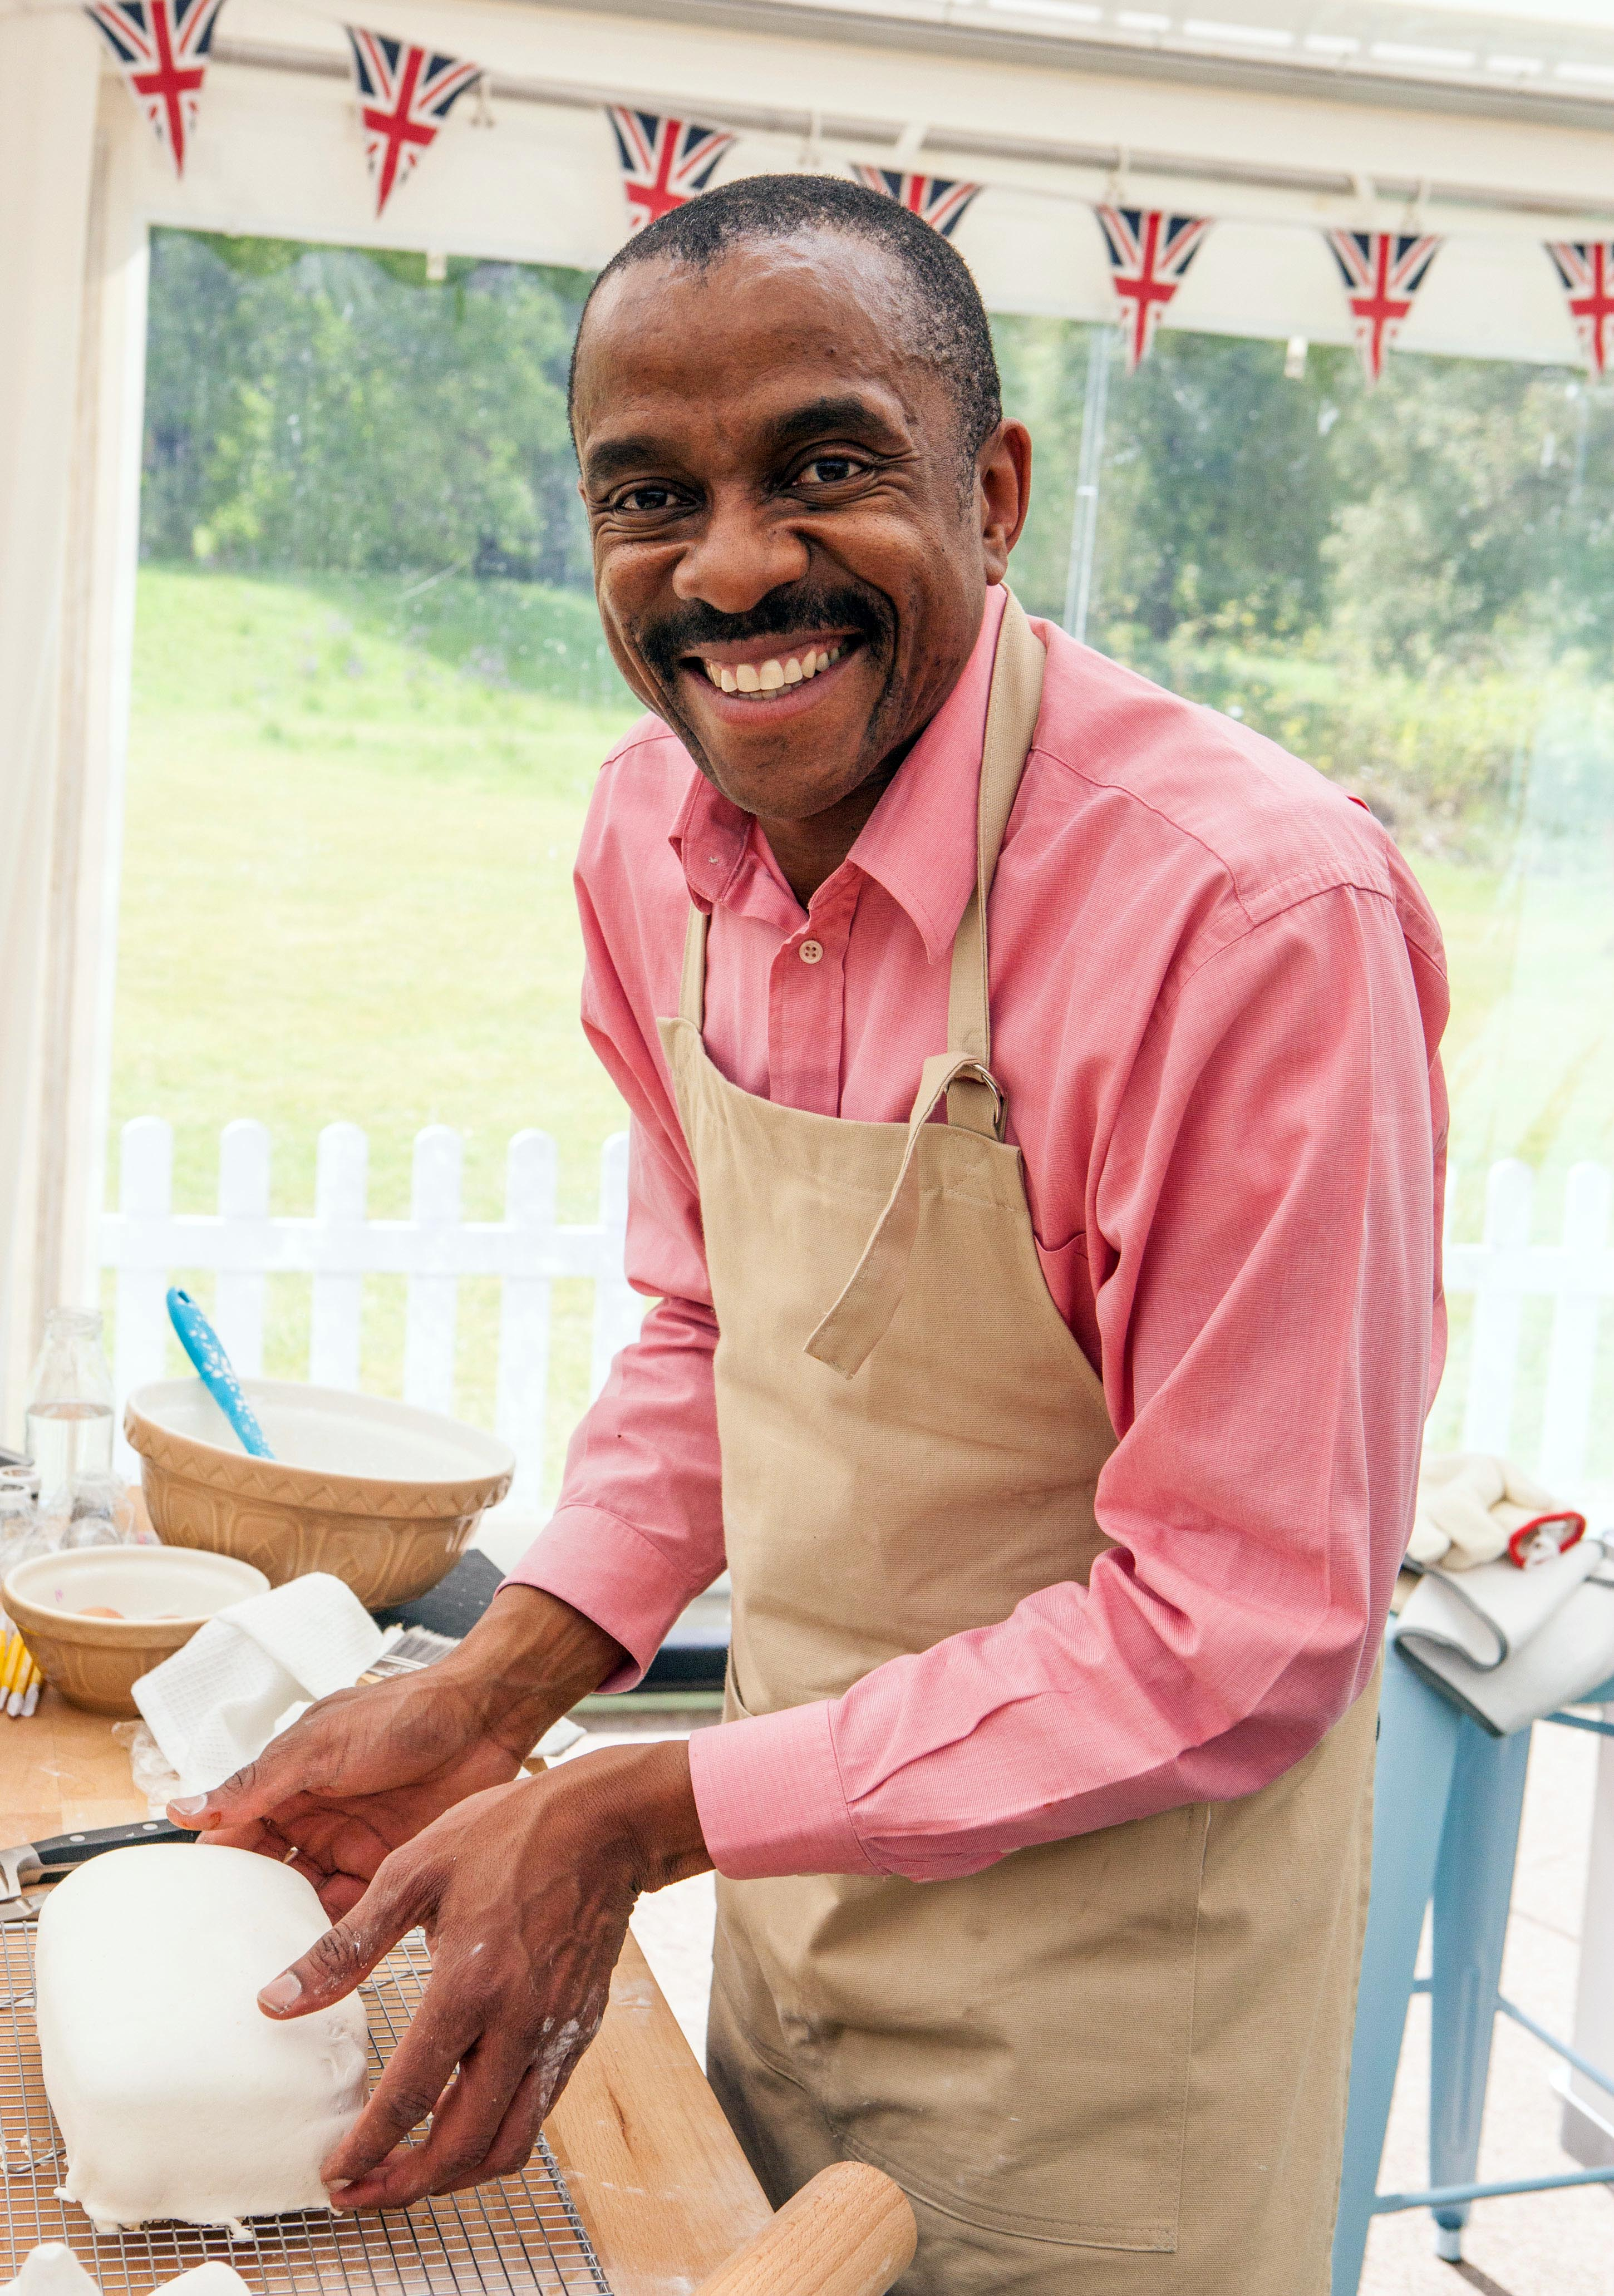 Peter on the Great British Bake Off